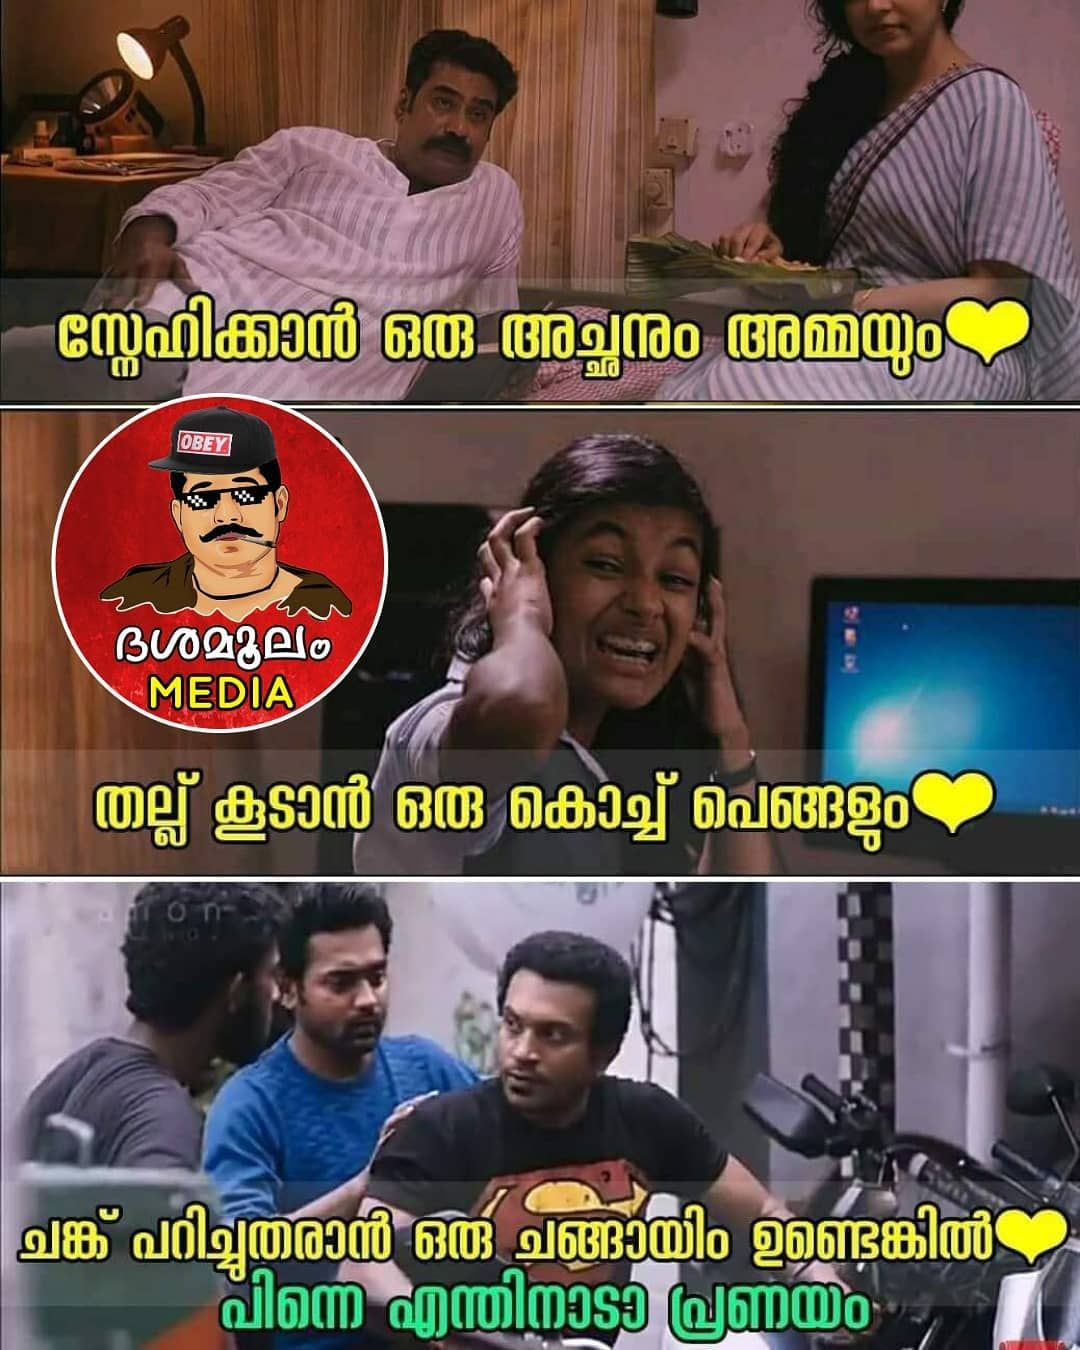 Image may contain 5 people, meme and text Malayalam